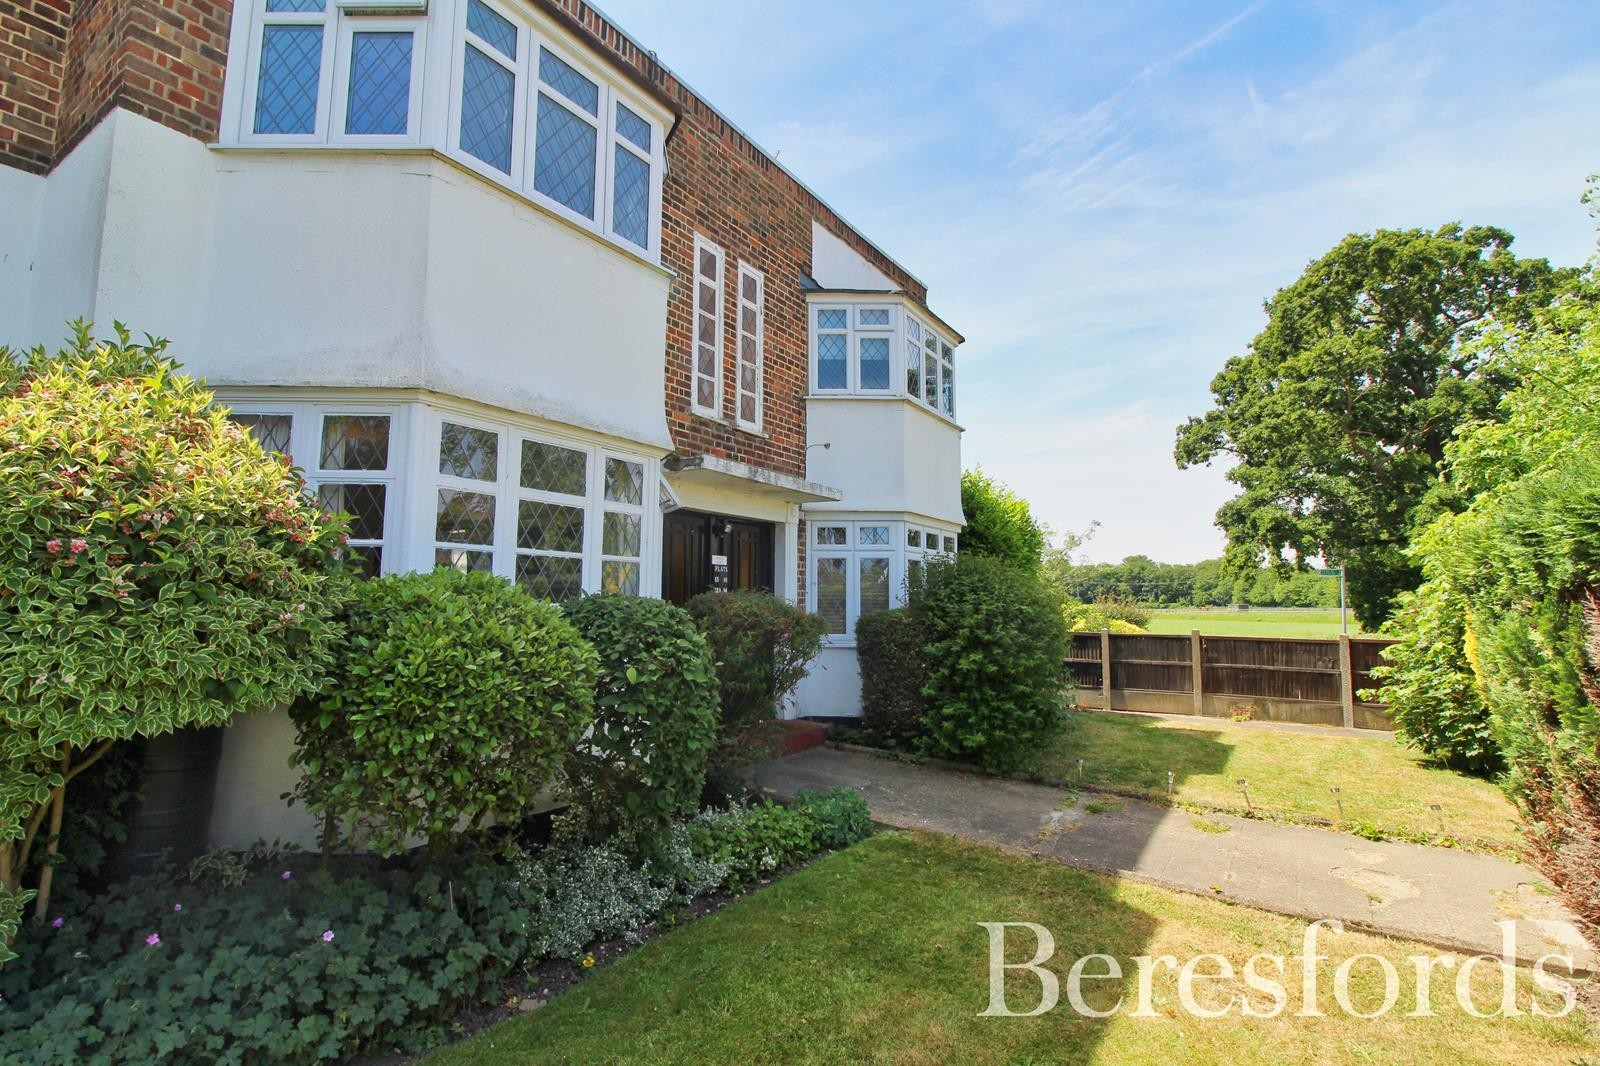 Grove Court, Little Gaynes Lane, Upminster, Essex, RM14